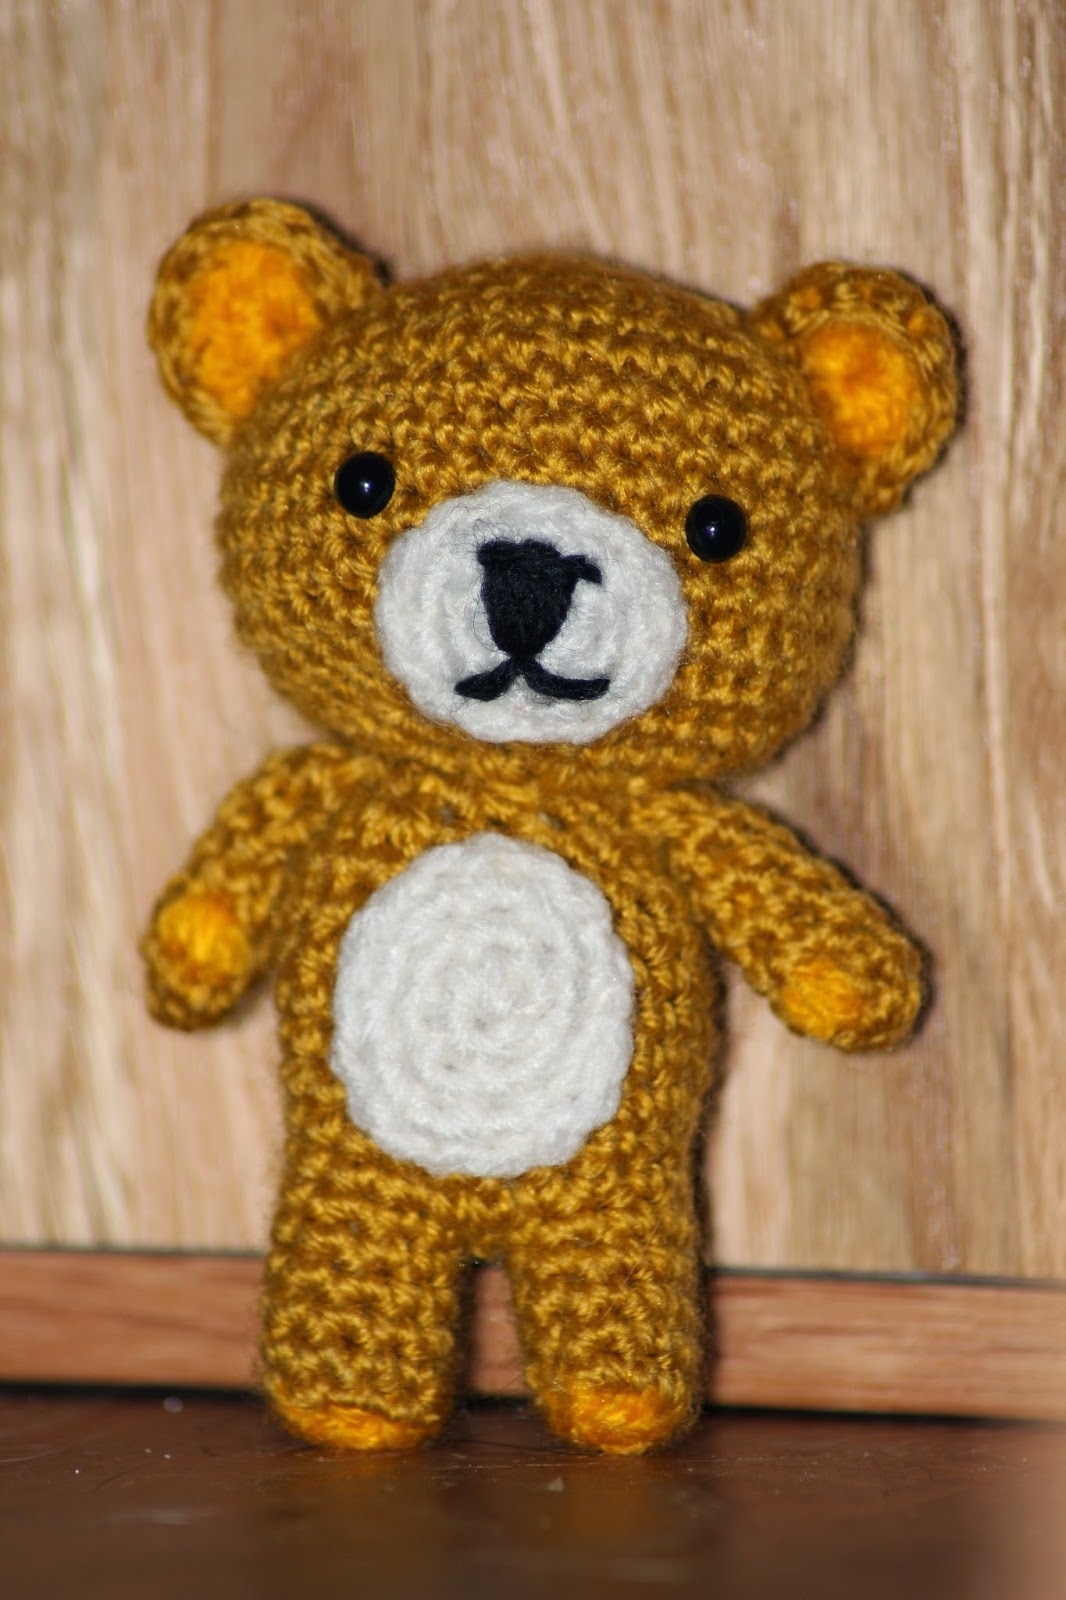 Crochet bear amigurumi | Crochet bear, Crochet bear patterns ... | 1600x1066